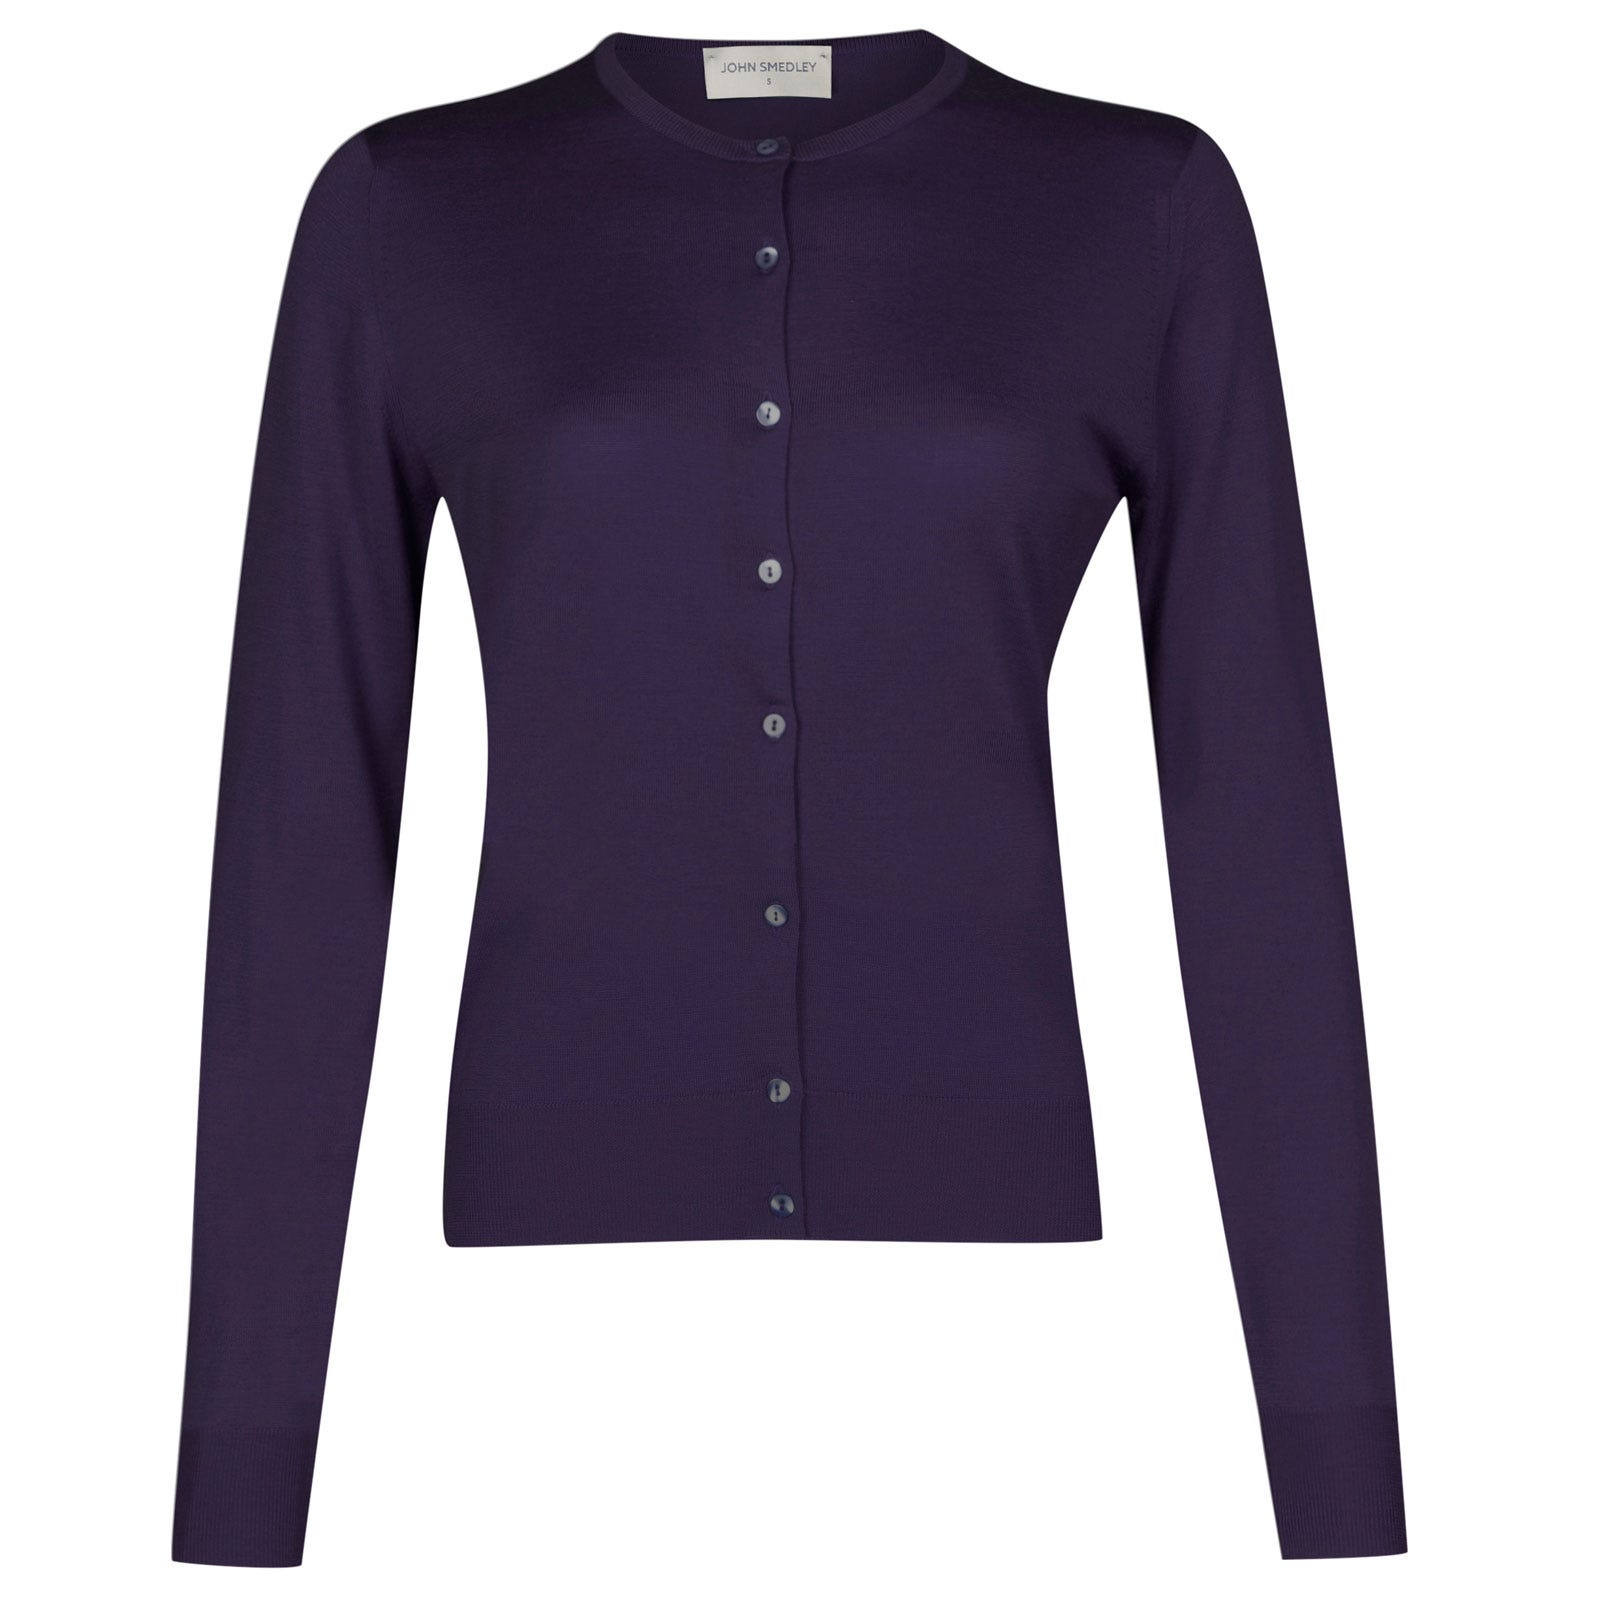 John Smedley pansy Merino Wool Cardigan in Elderberry Purple-S